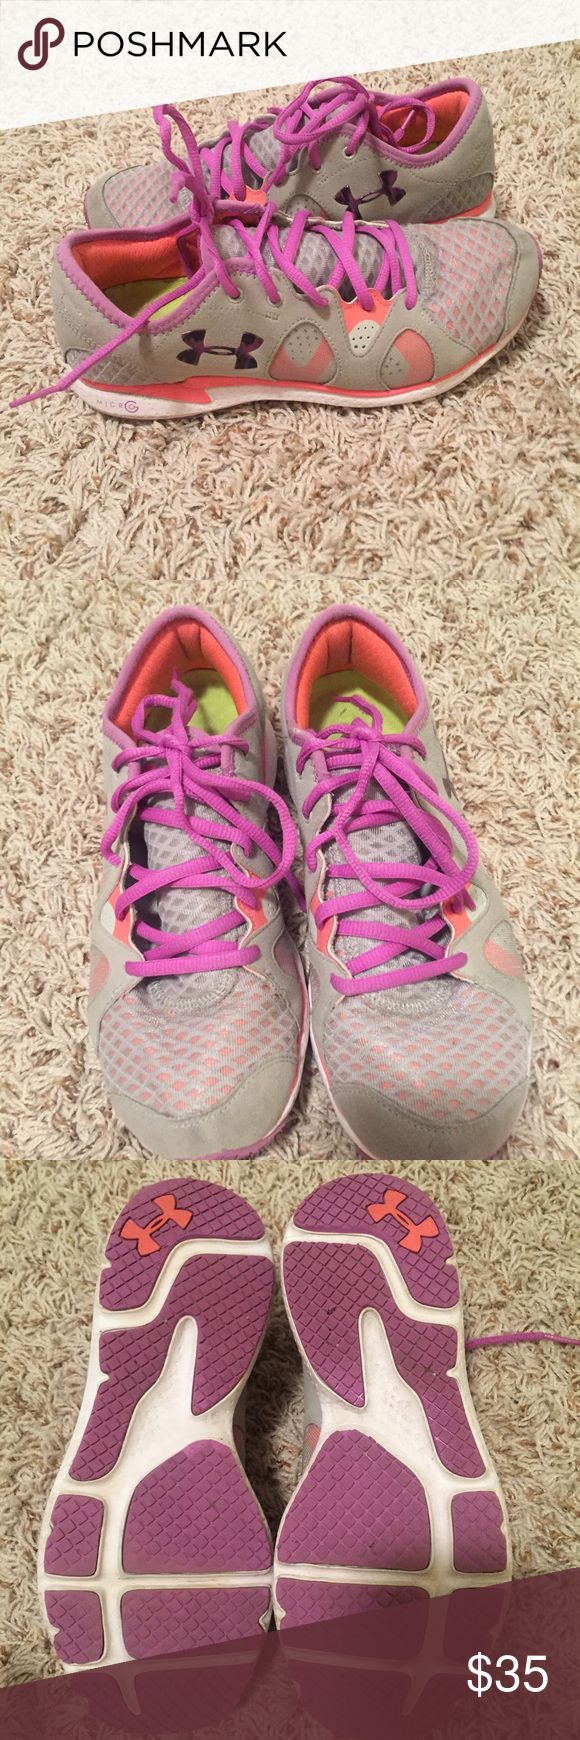 Under Armour Tennis Shoes Worn but in good condition! No trades. Under Armour Shoes Sneakers